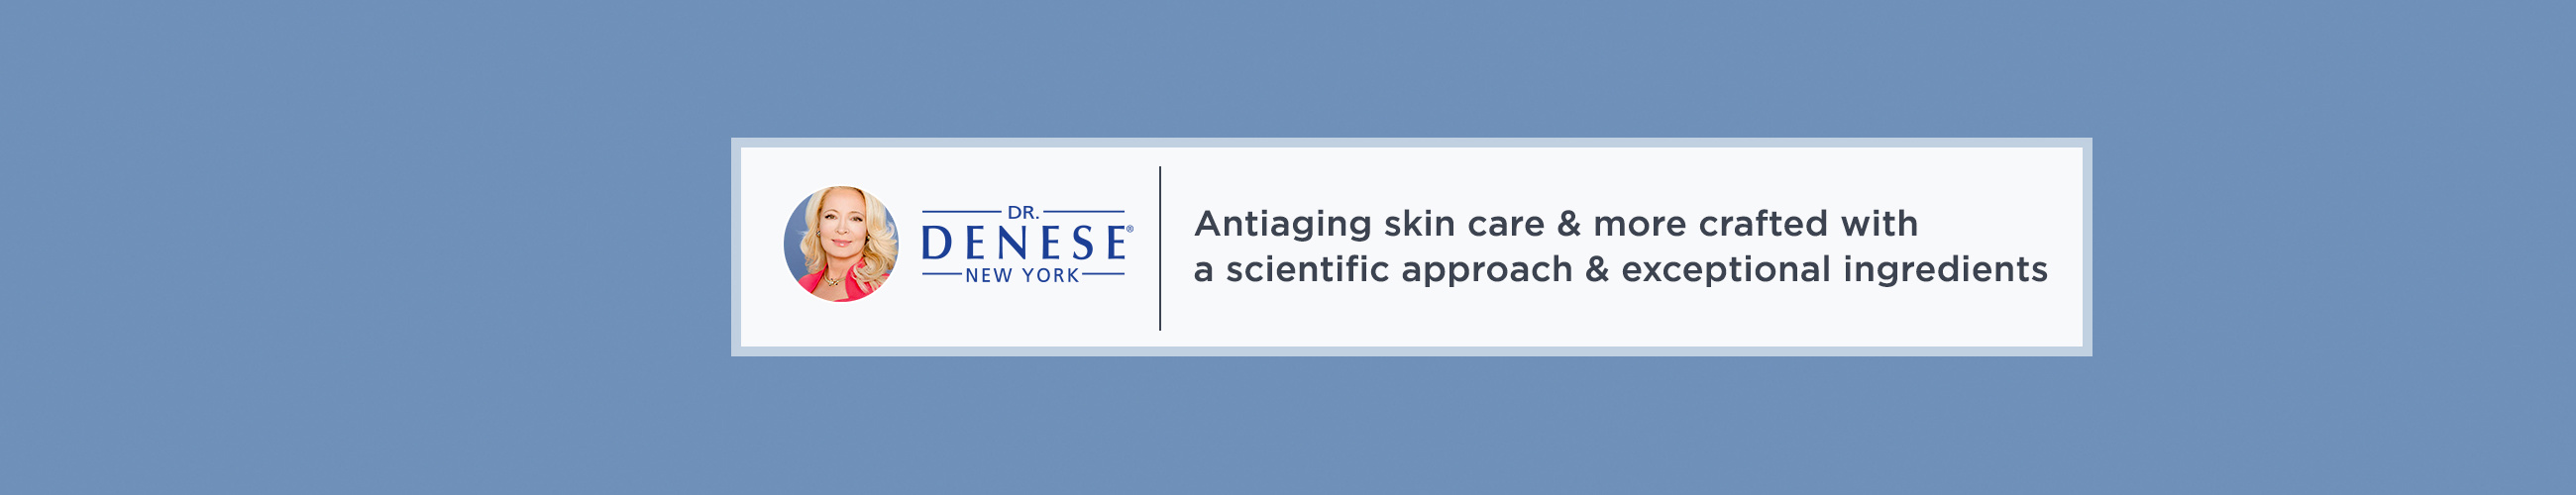 Dr. Denese, Antiaging skin care & more crafted with a scientific approach & exceptional ingredients